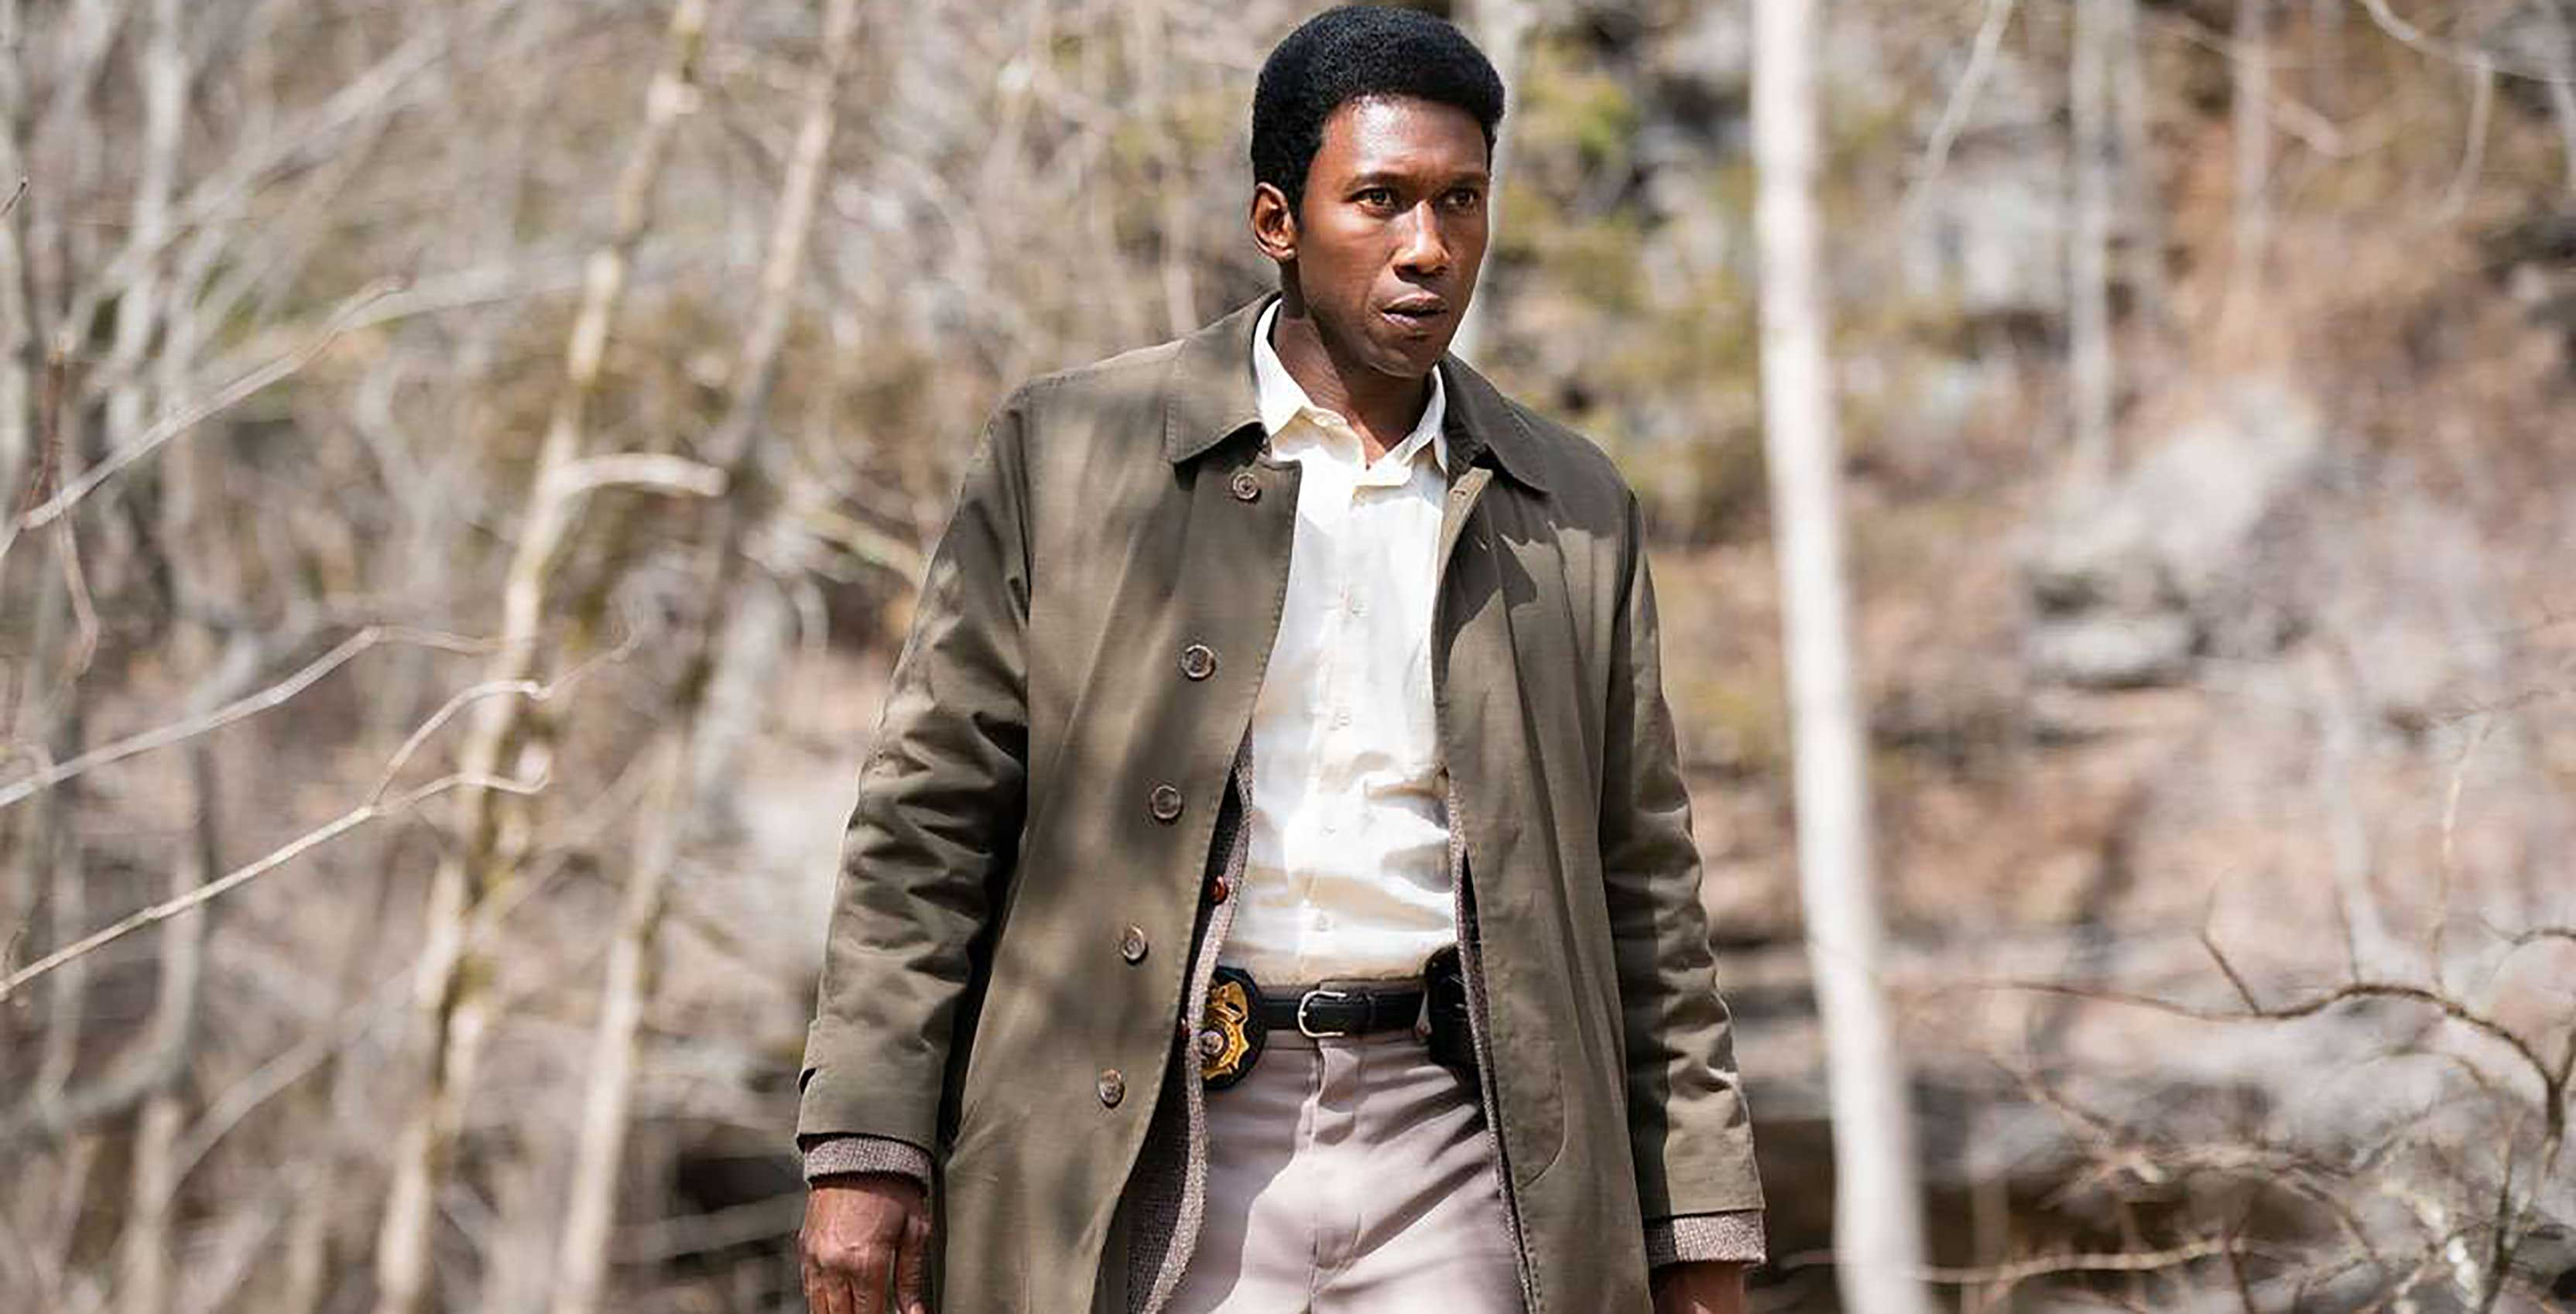 True Detective Mahershala Ali young